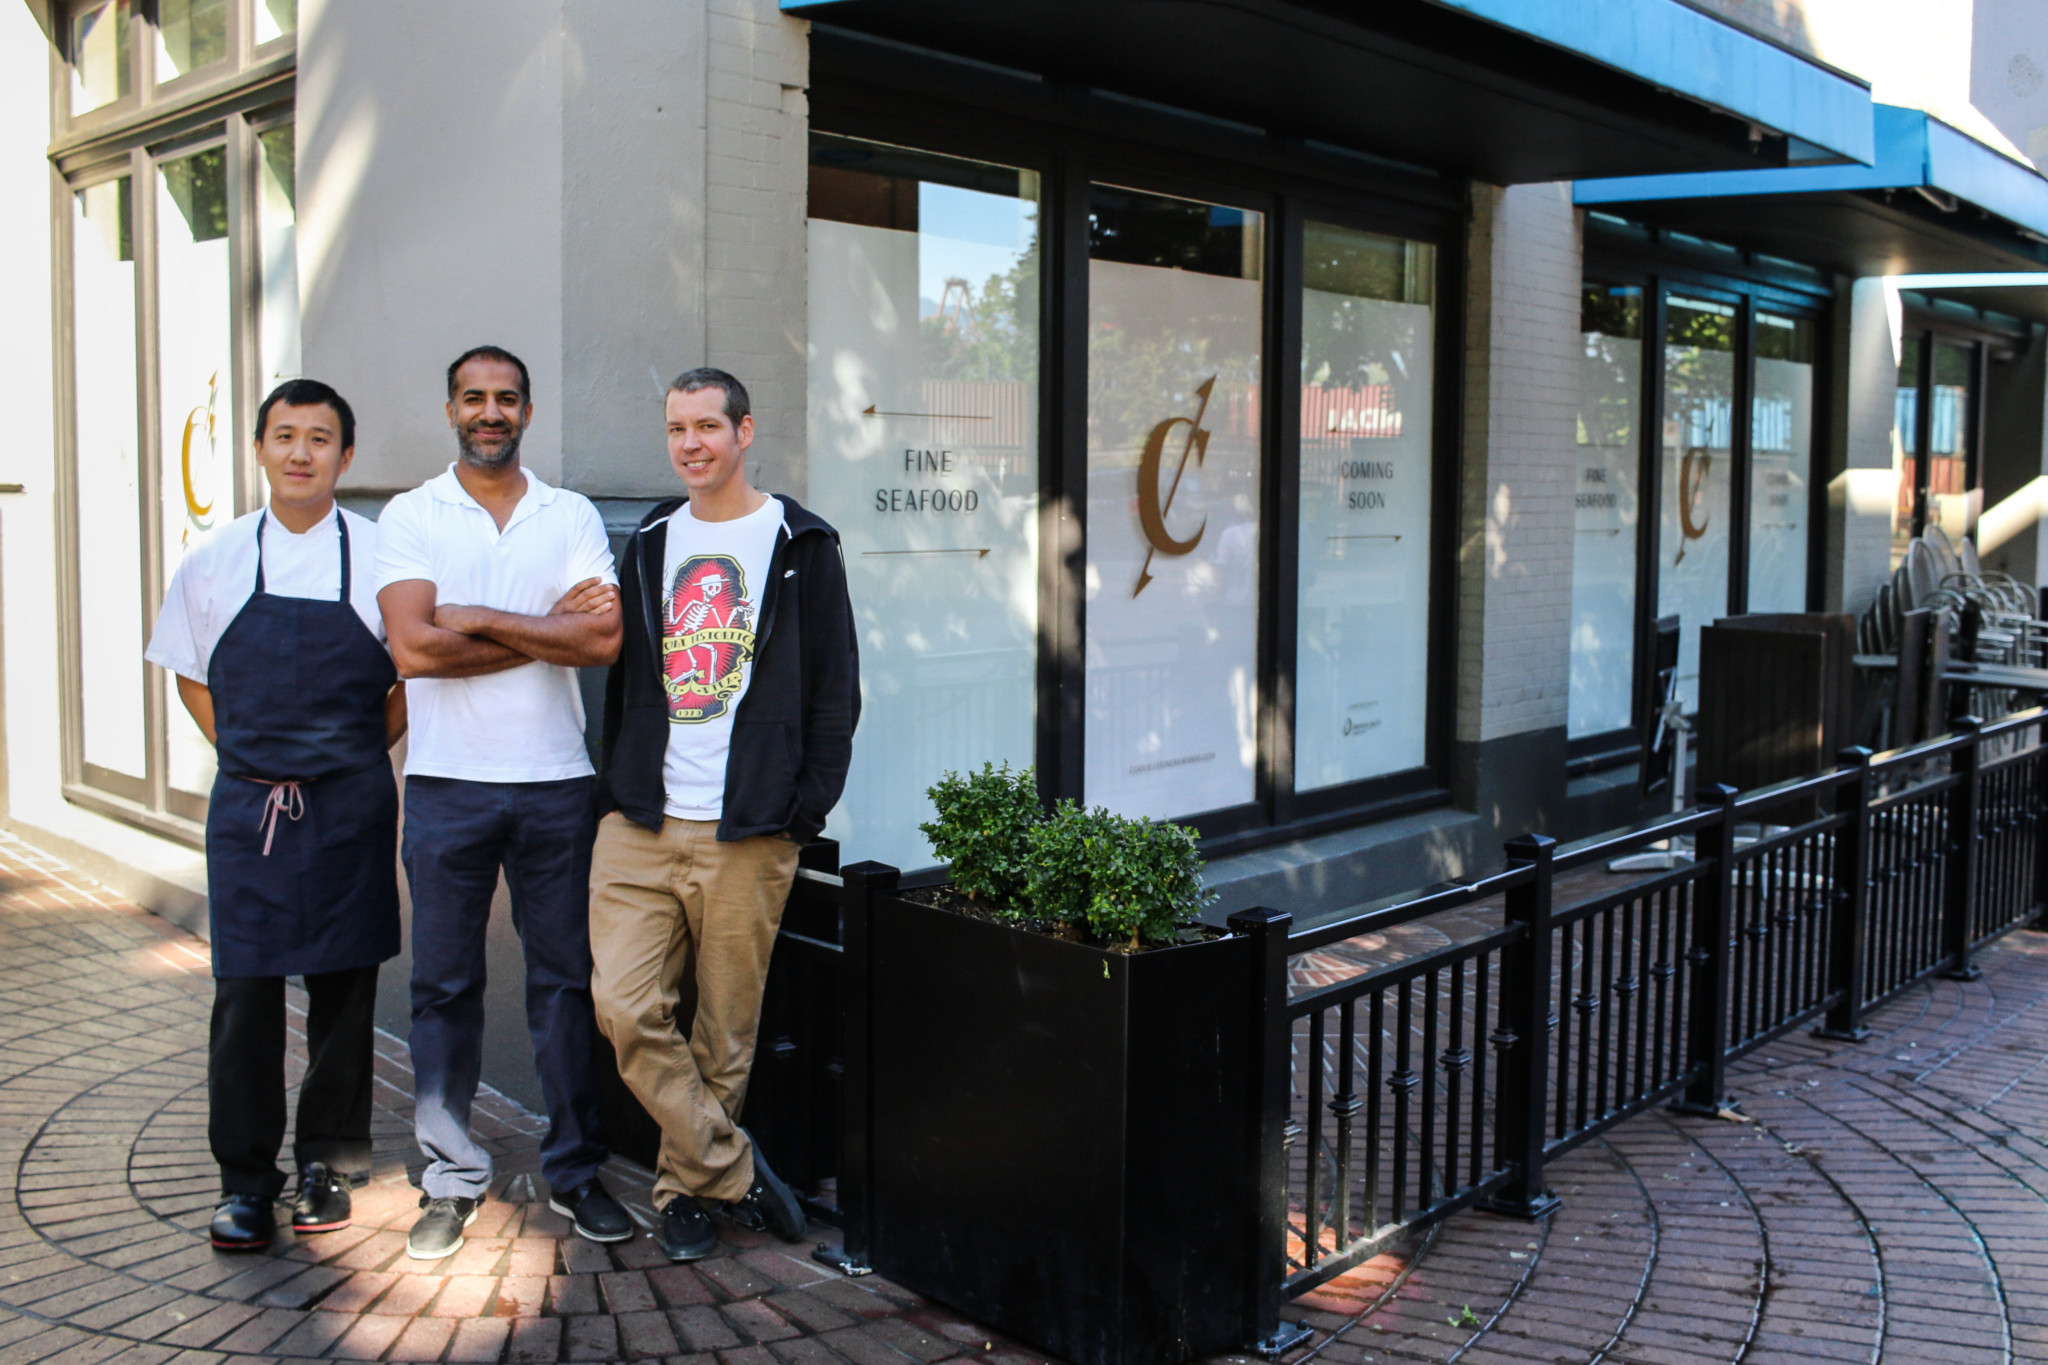 COQUILLE FINE SEAFOOD CASTS ITS NET IN THE HEART OF VANCOUVER'S HISTORIC GASTOWN DISTRICT THIS WINTER